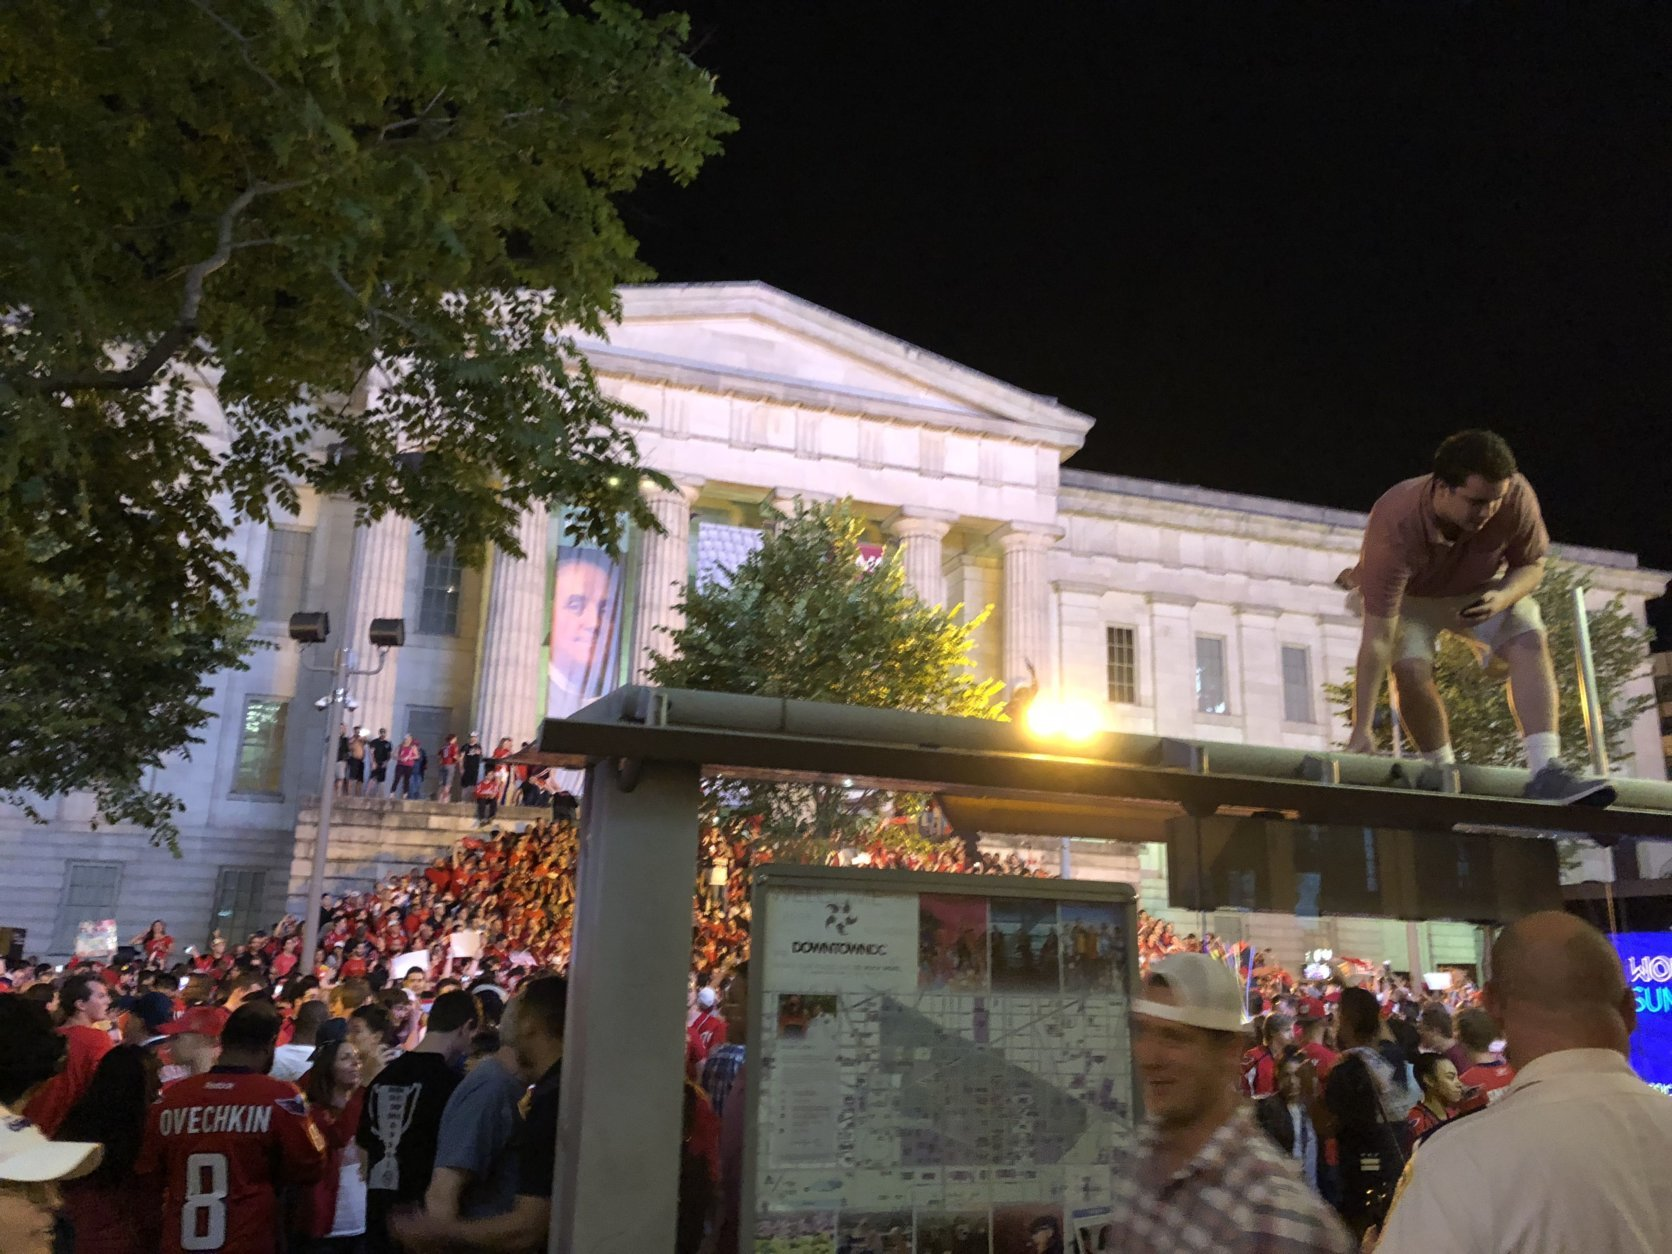 Fans celebrate outside the National Portrait Gallery in D.C. after Caps advance to the Stanley Cup Final on Wednesday, May 23, 2018. (WTOP/Jason Fraley)